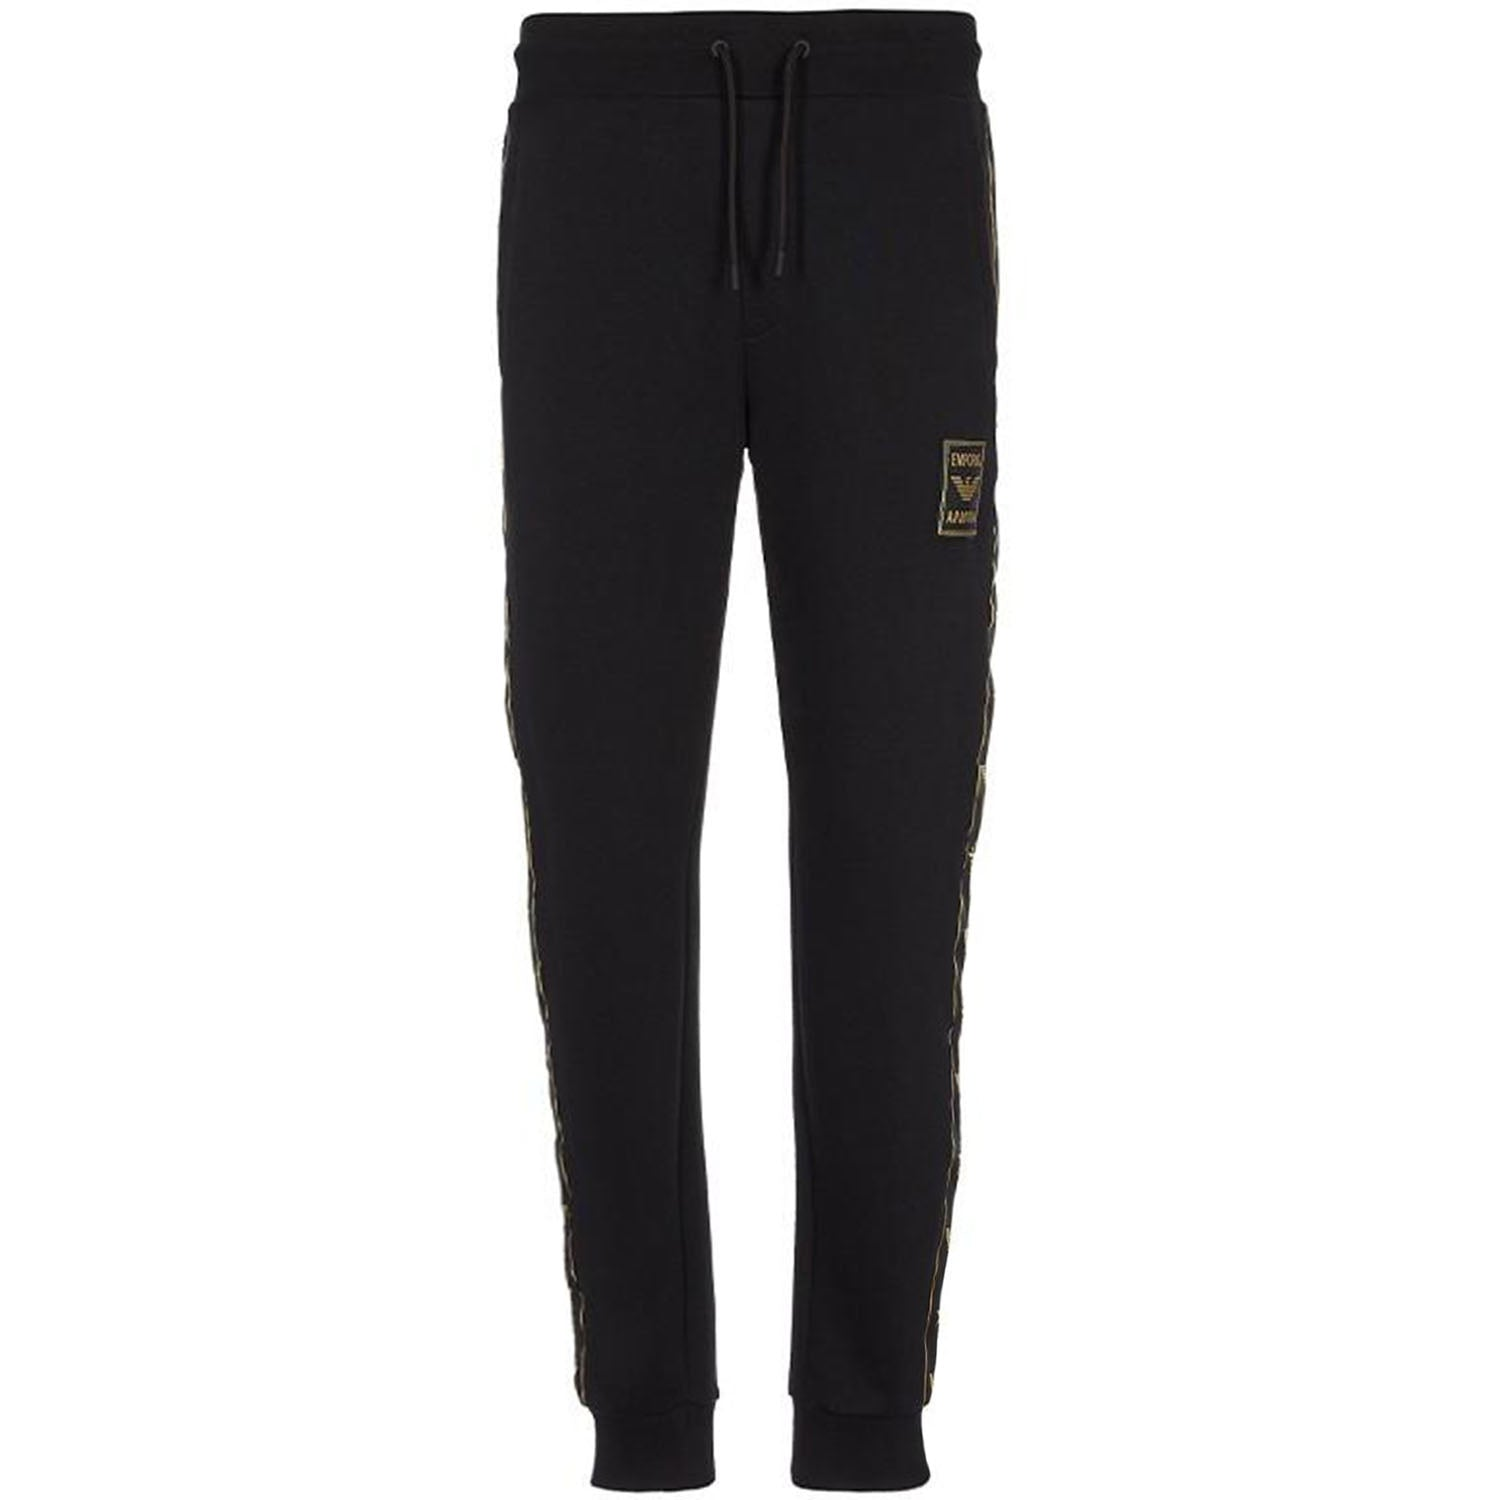 Emporio Armani Gold Tape Black Jogging Sweatpants